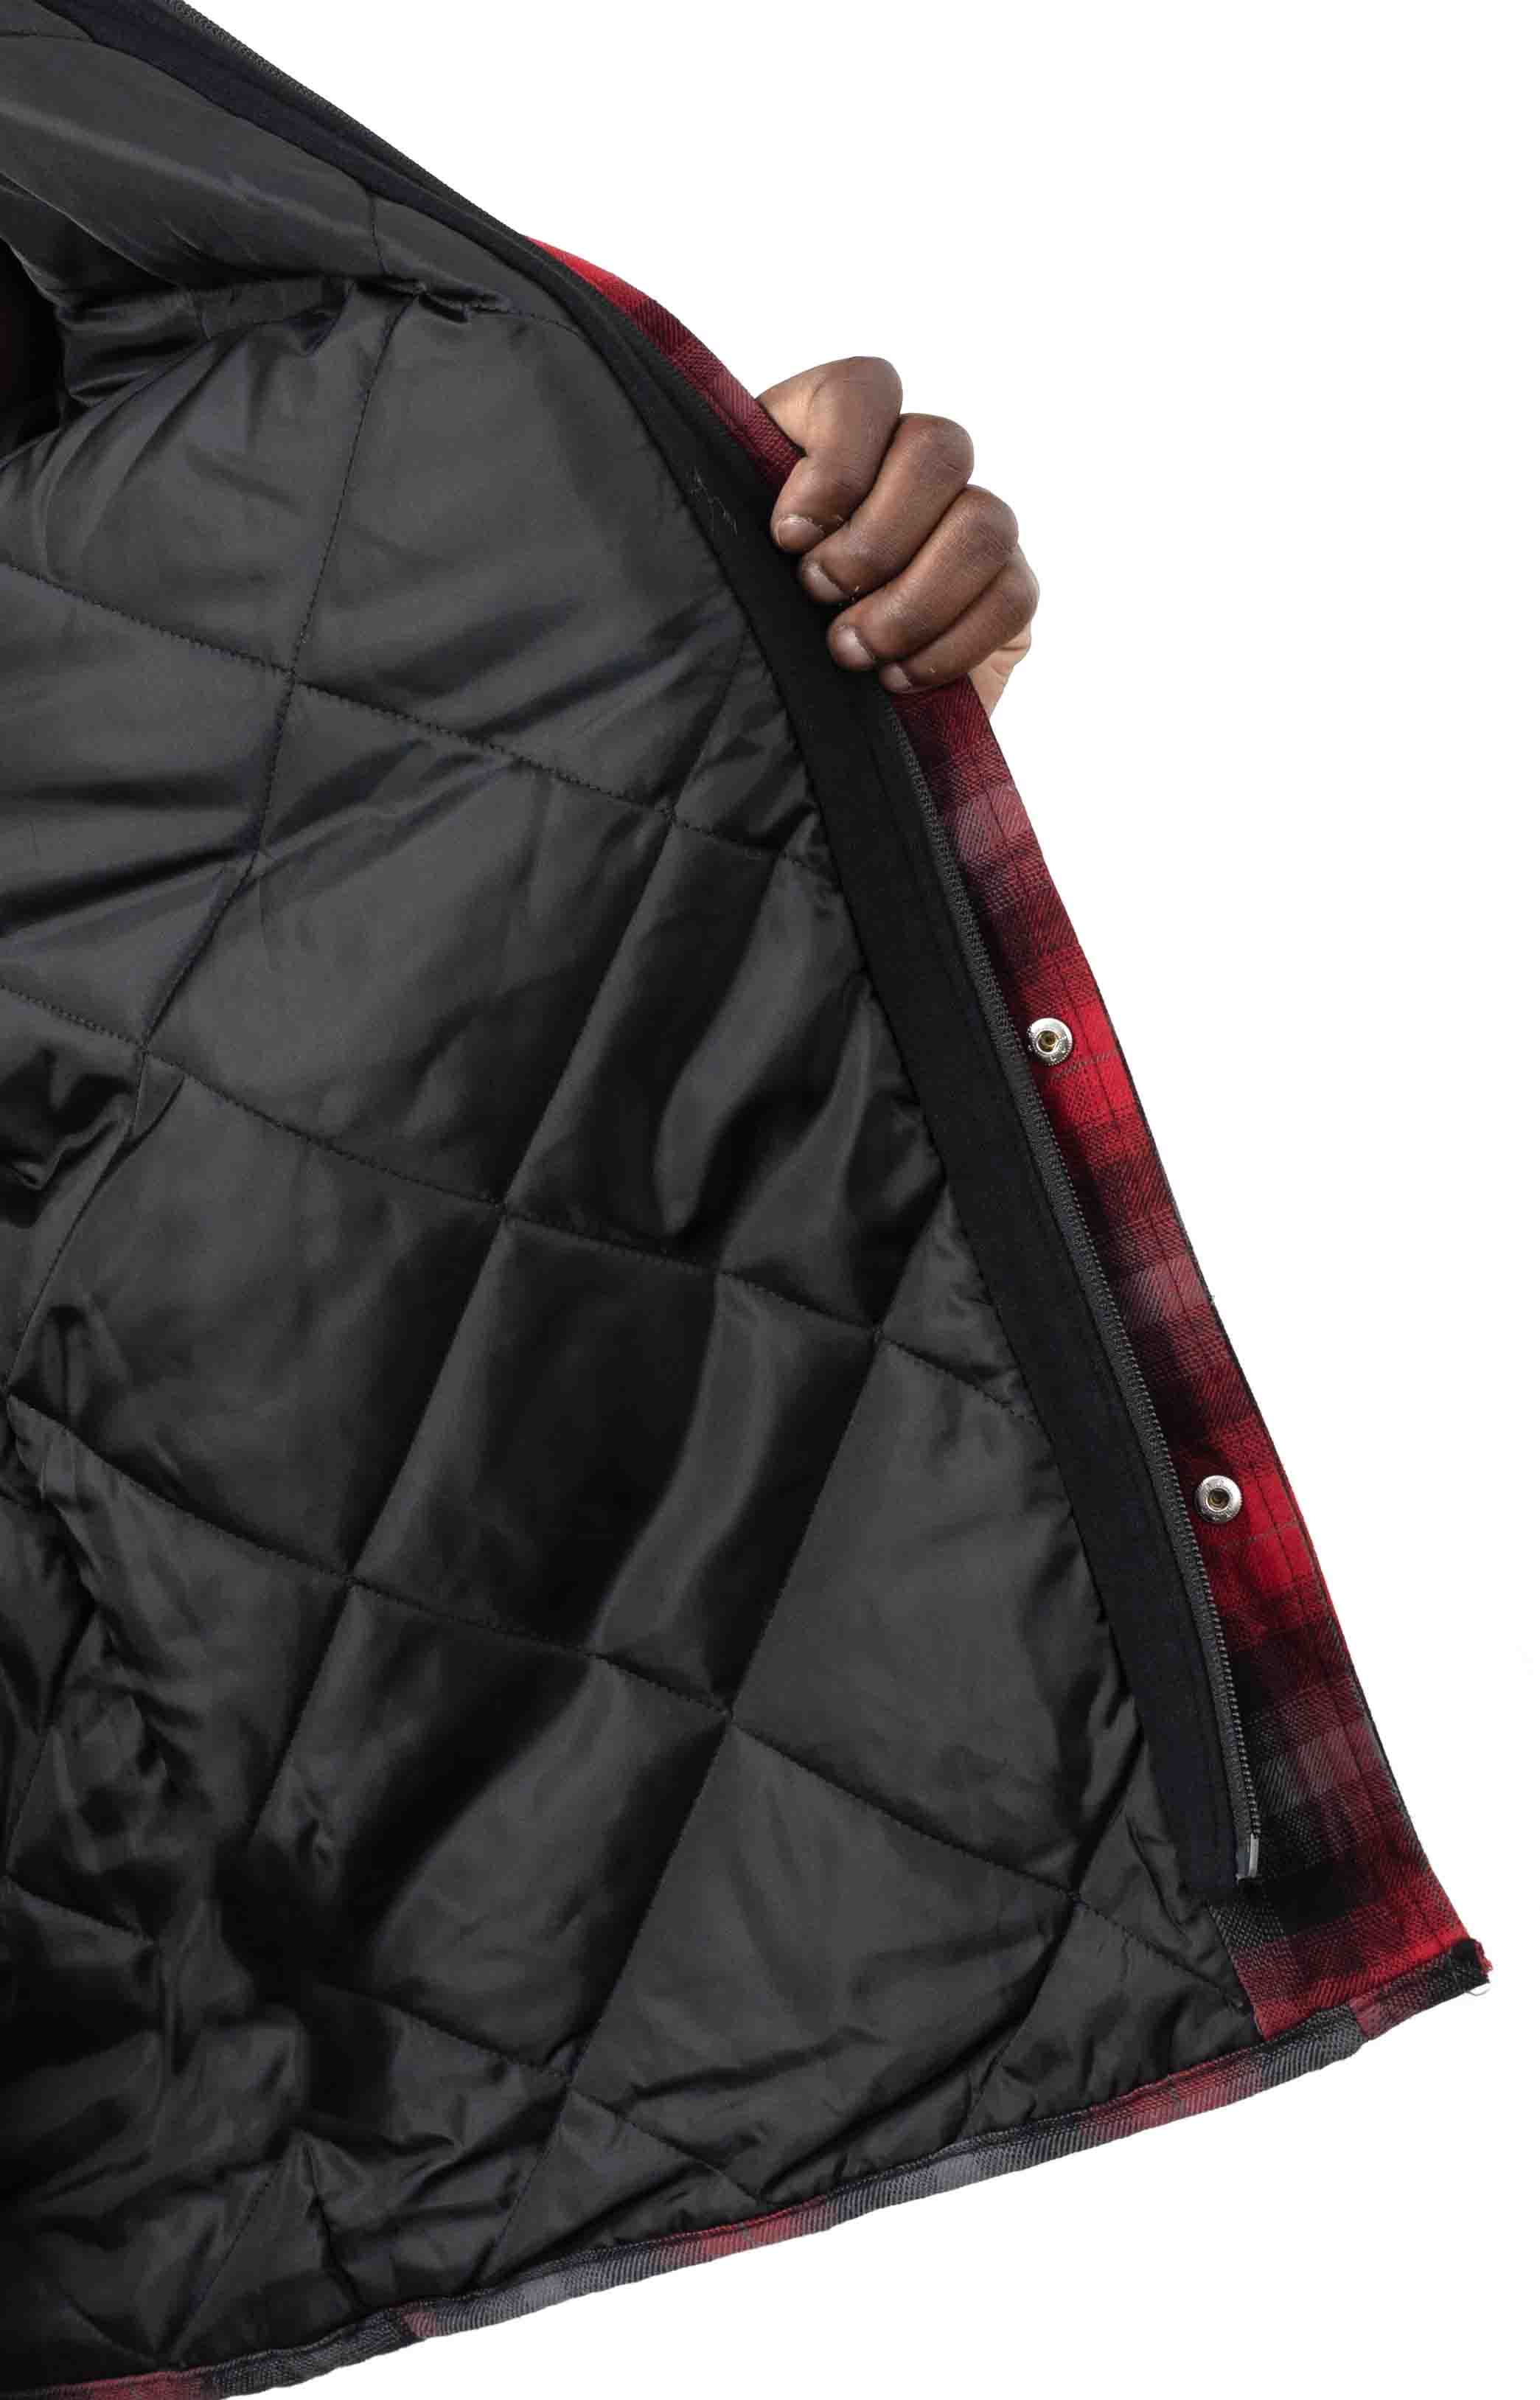 (TJ211INP1) Fleece Hooded Flannel Shirt Jacket with Hydroshield - English Red Black Ombre P 4